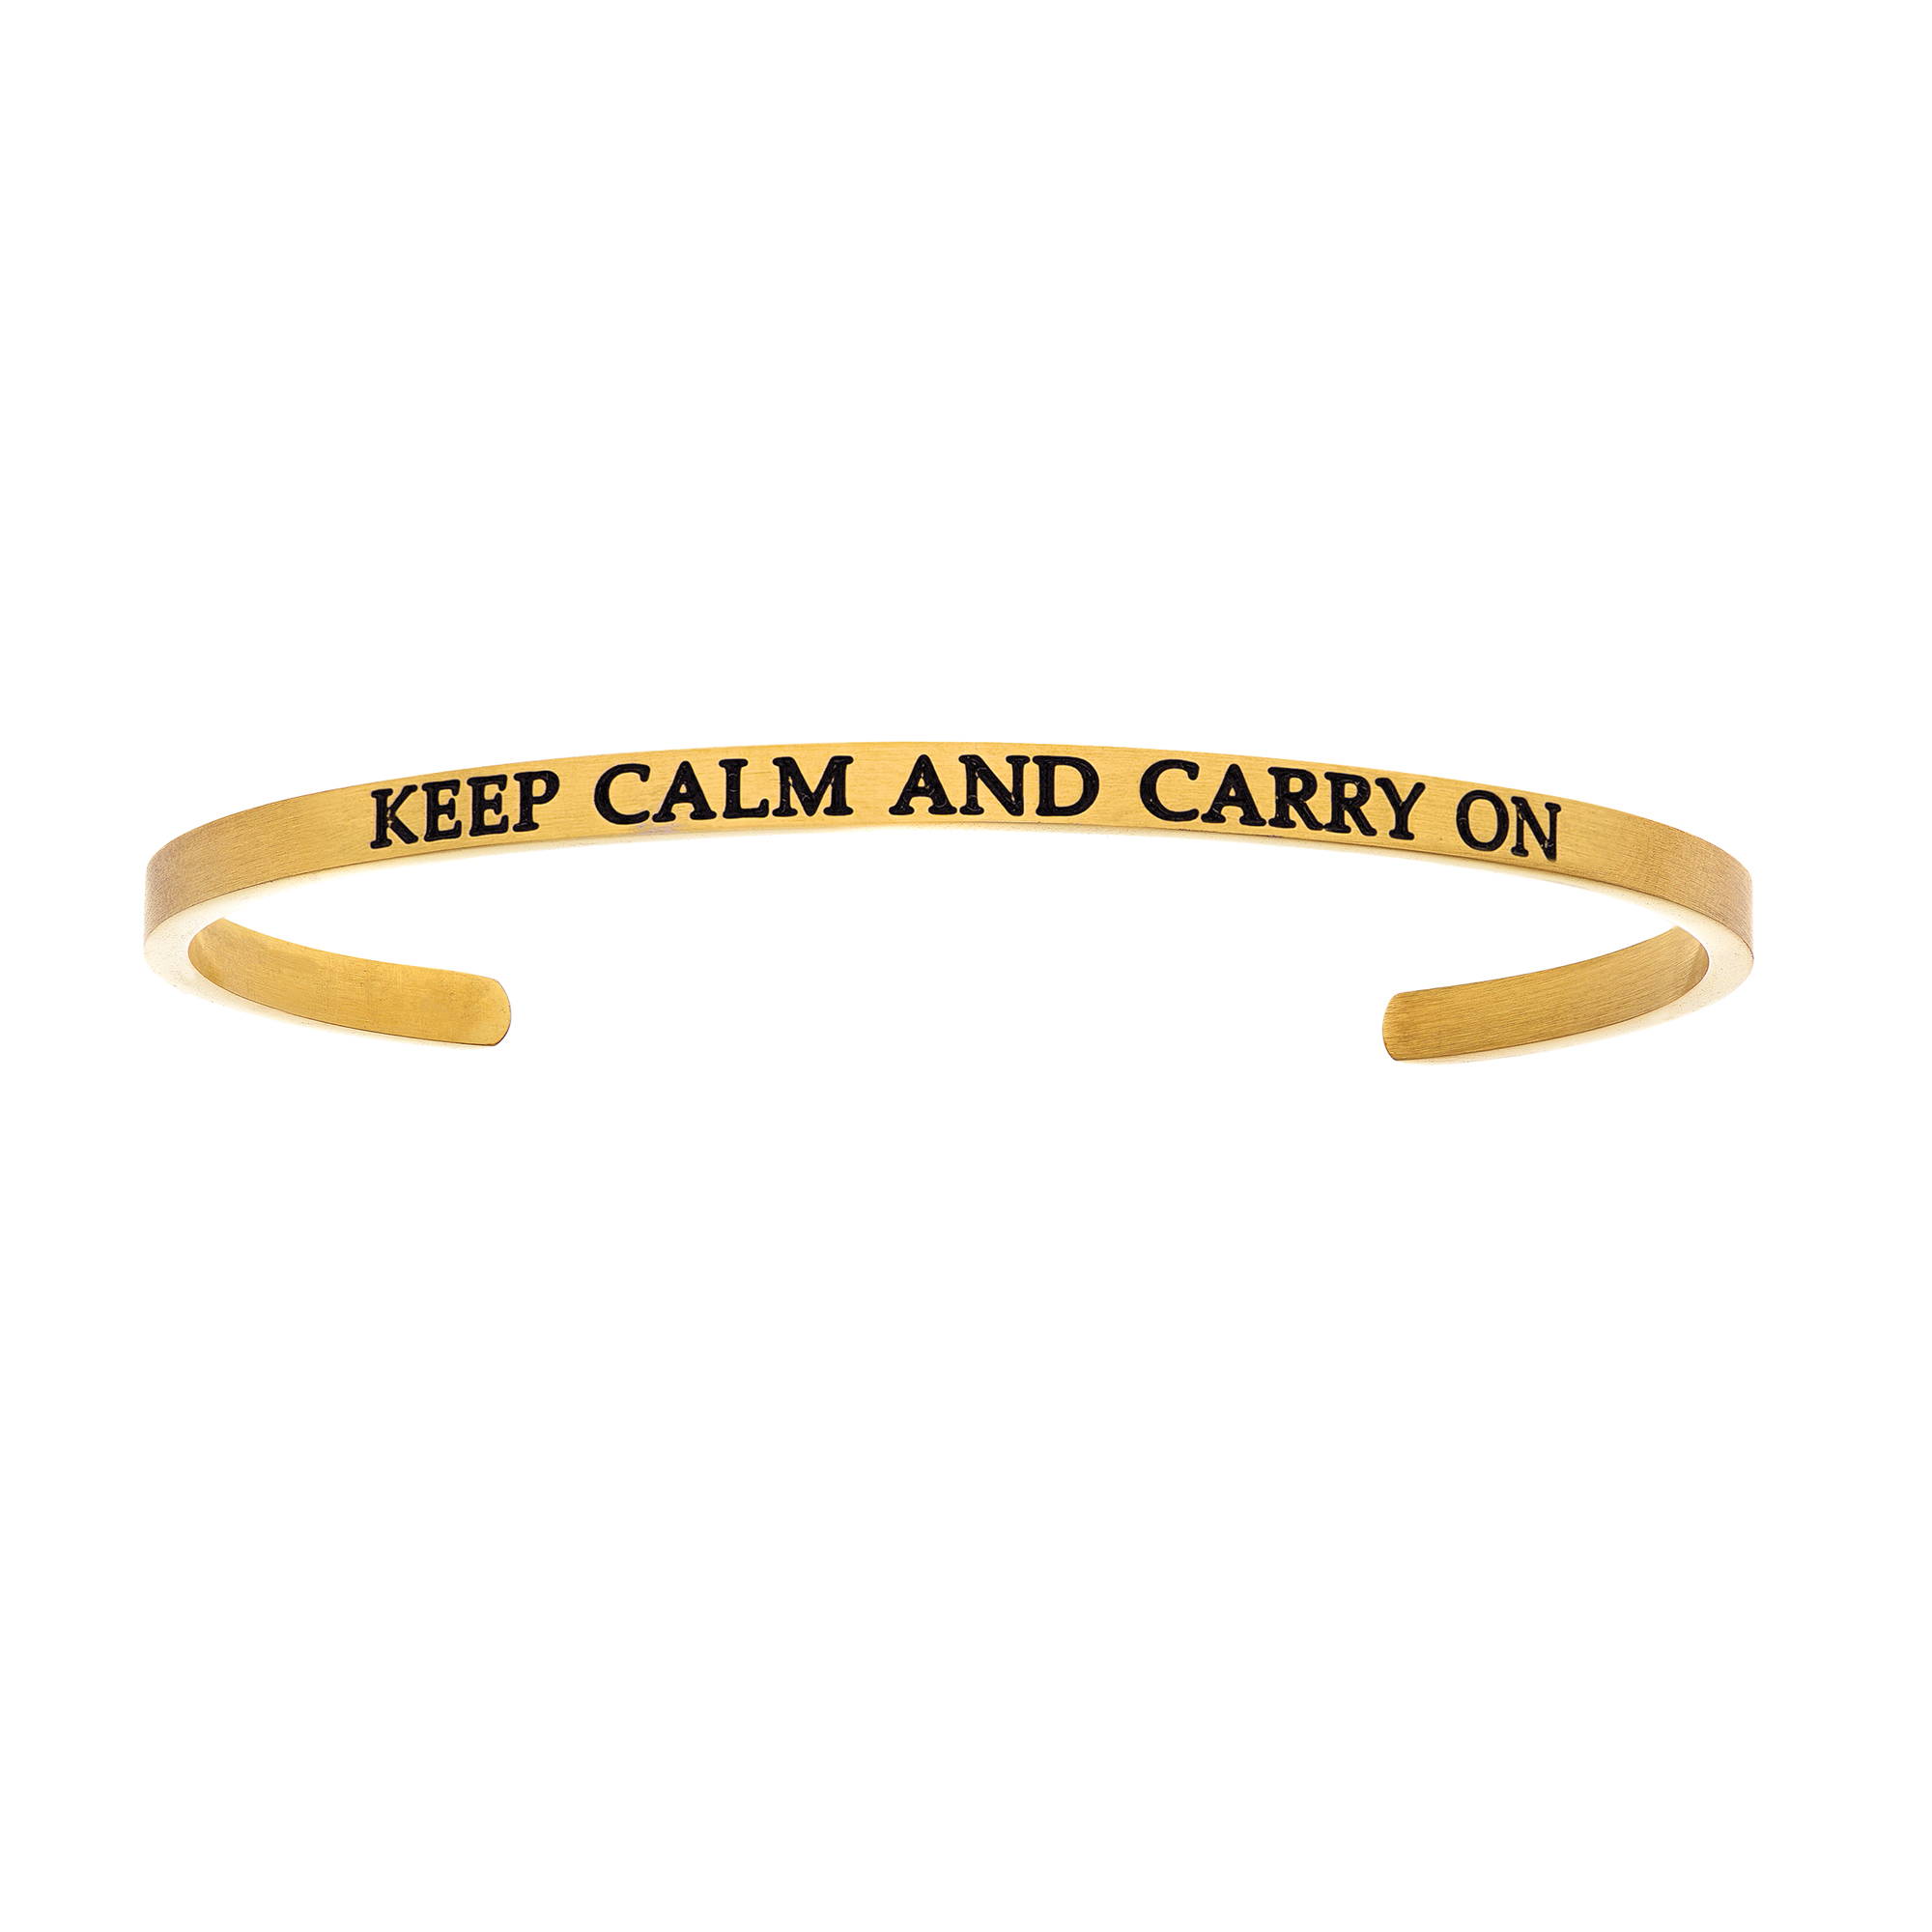 Intuitions Stainless Steel KEEP CALM AND CARRY ON Diamond Accent Cuff Bangle Bracelet, 7″